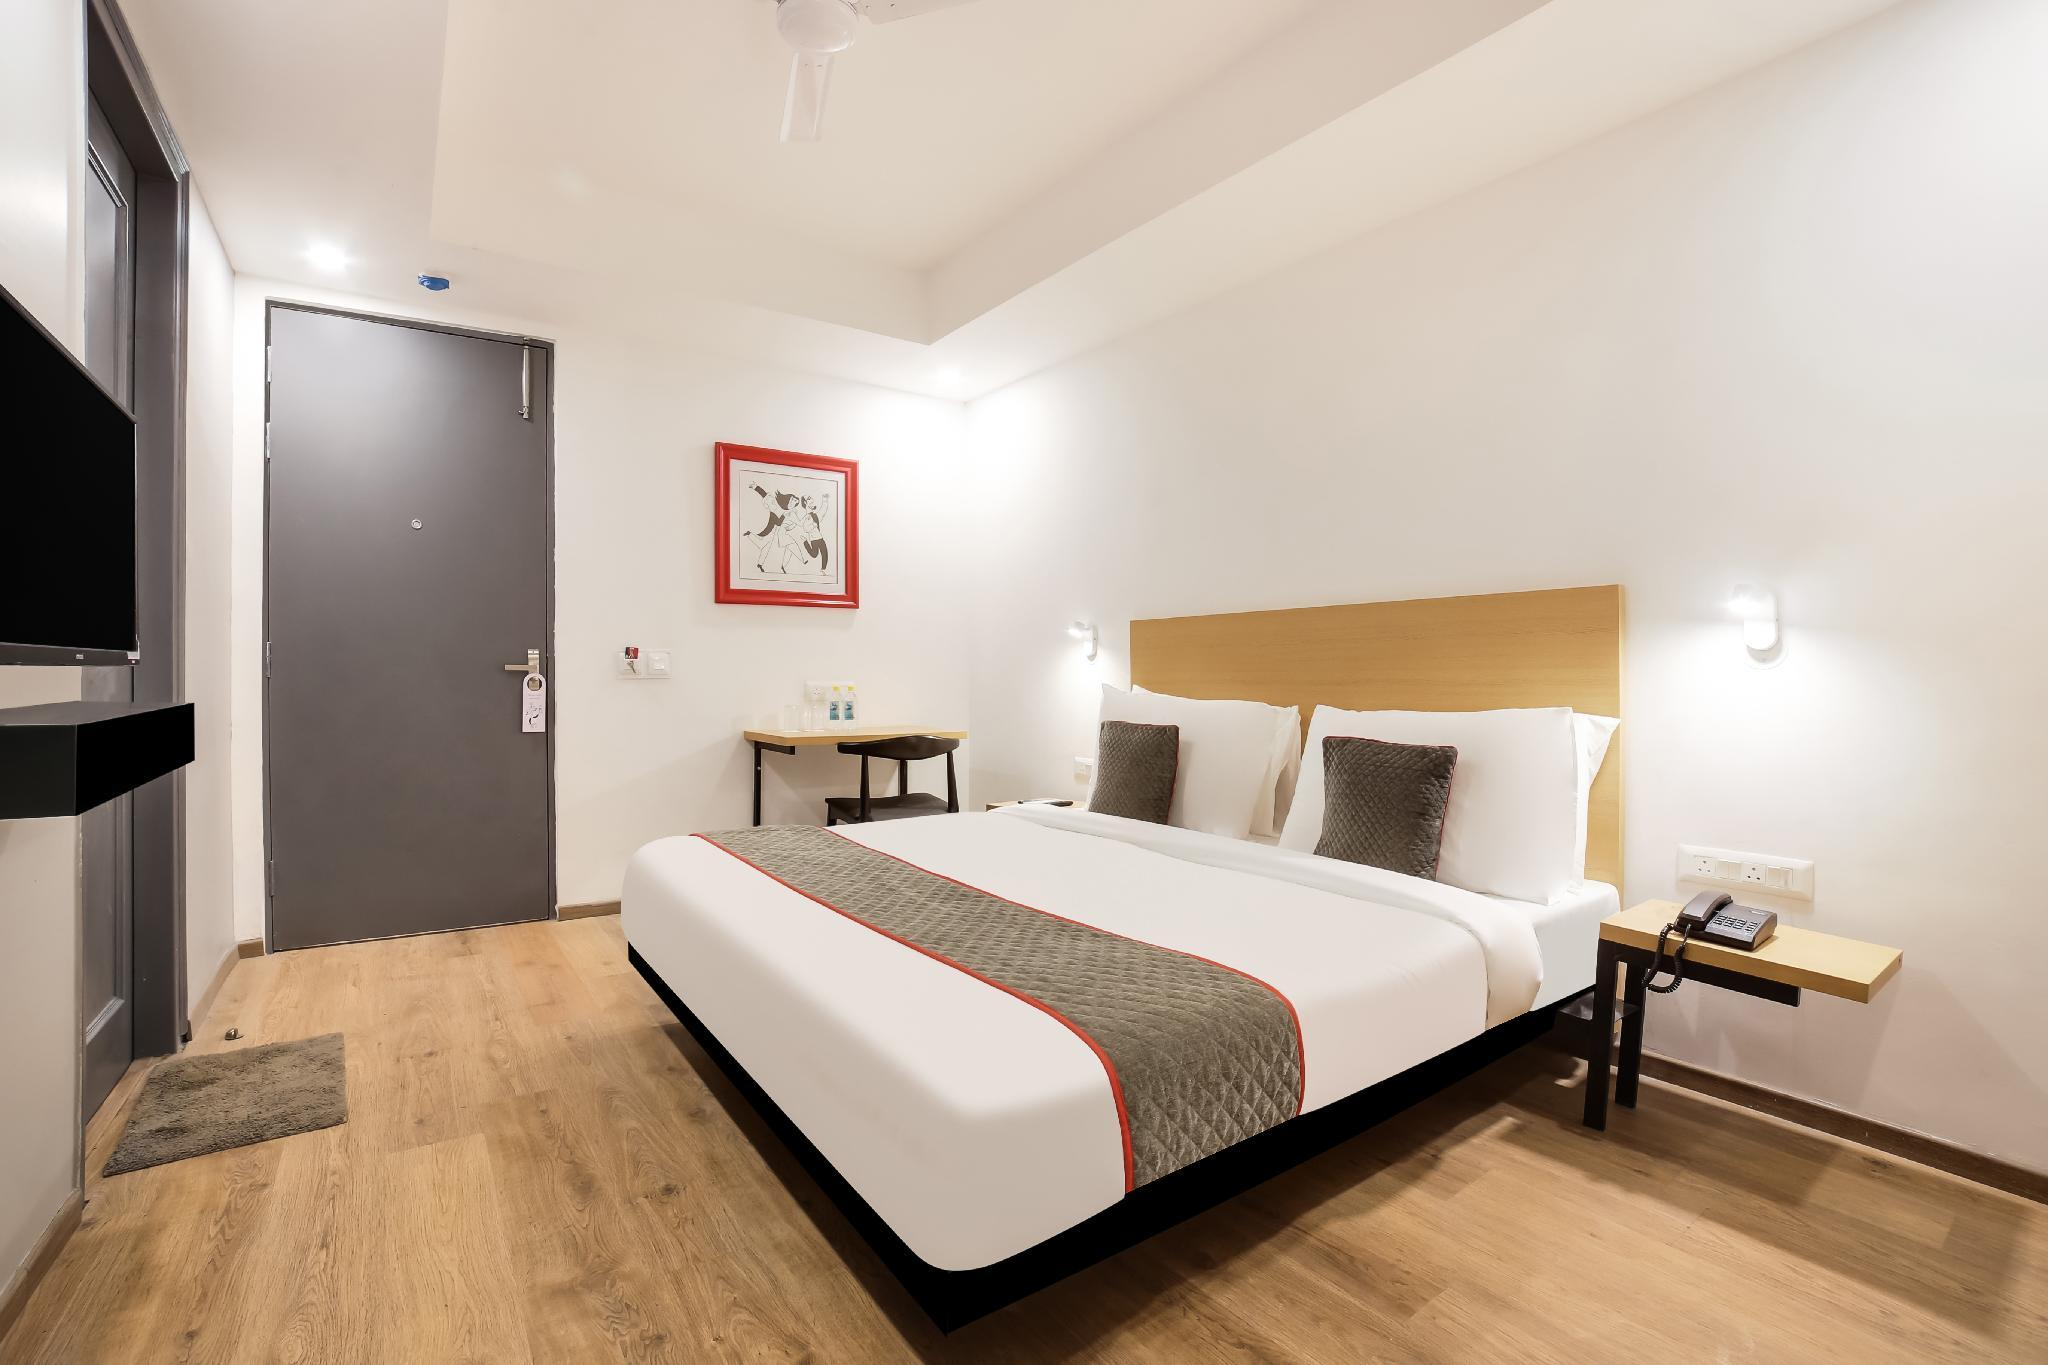 OYO Townhouse 141 Sector 14 Old Gurgaon